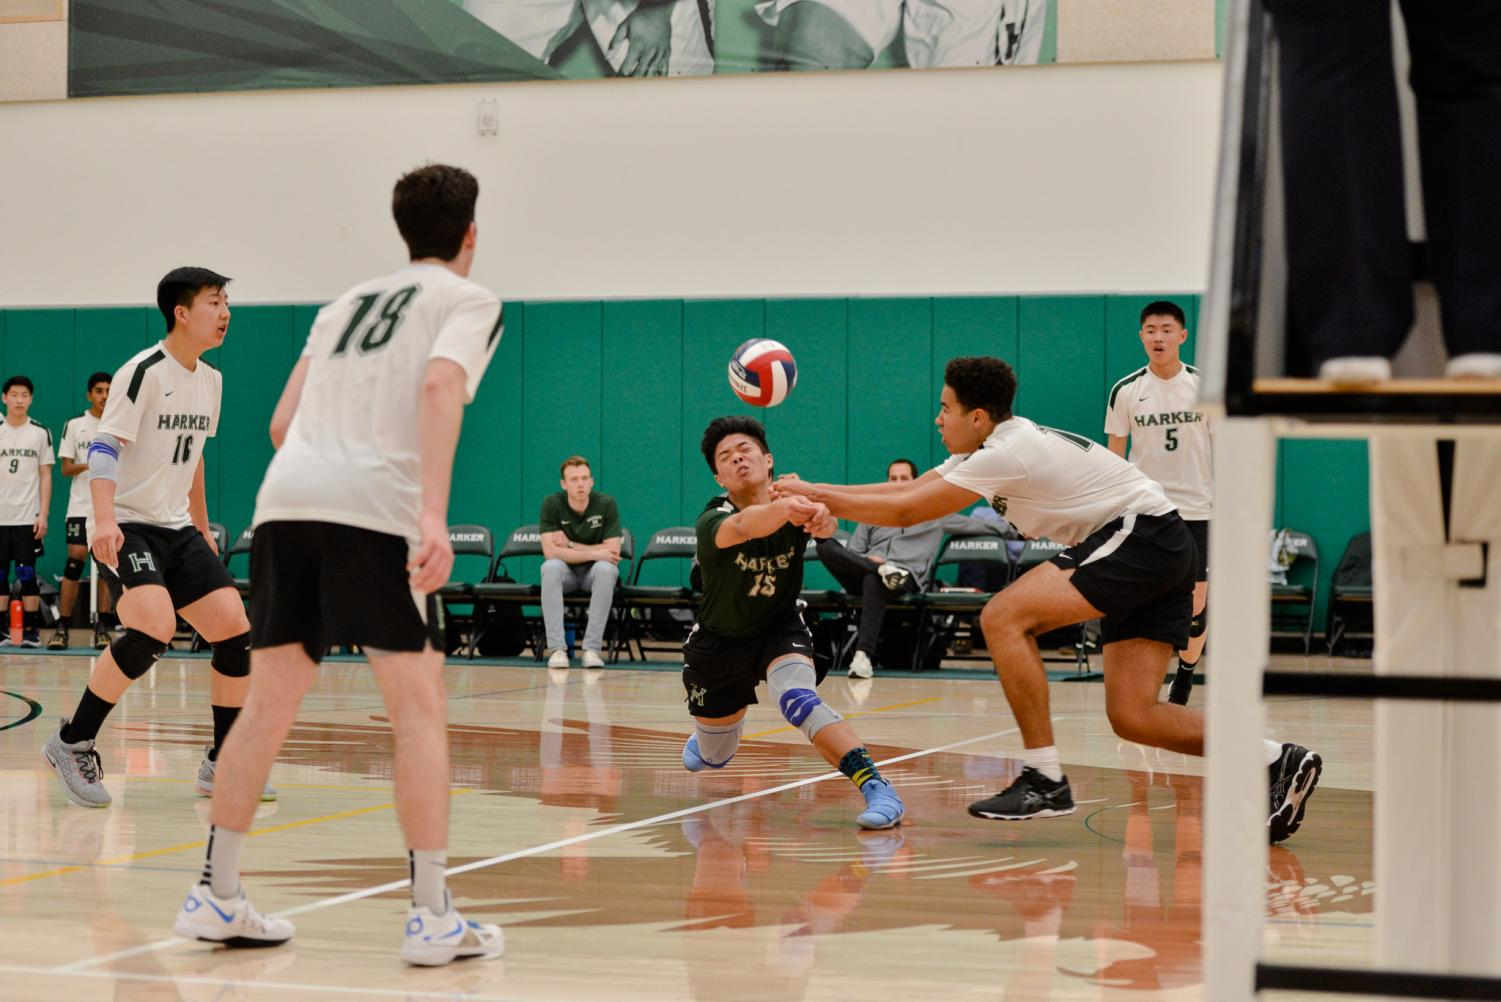 Brian+Pinkston+%2810%29+and+Chris+Gong+%2812%29+reach+to+spike+the+ball+at+the+same+time+during+Friday%27s+game+against+Monta+Vista.